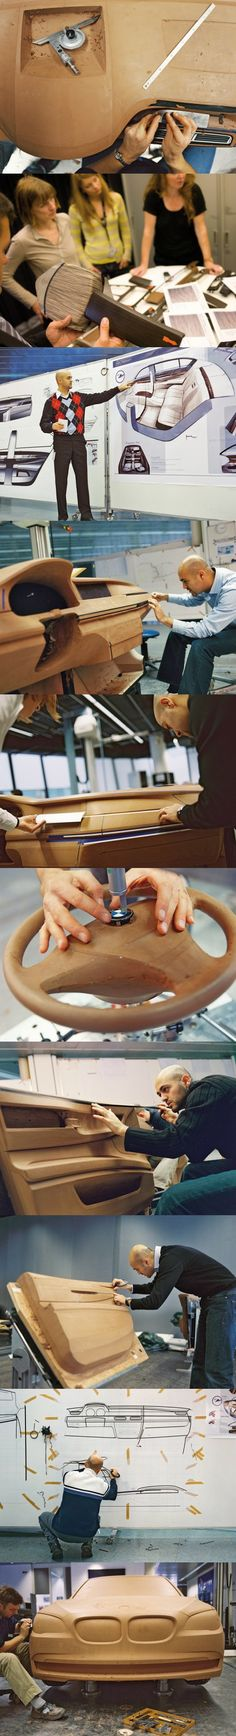 bmw 7 Series process. Impressive to see the actually sculpting of a car.